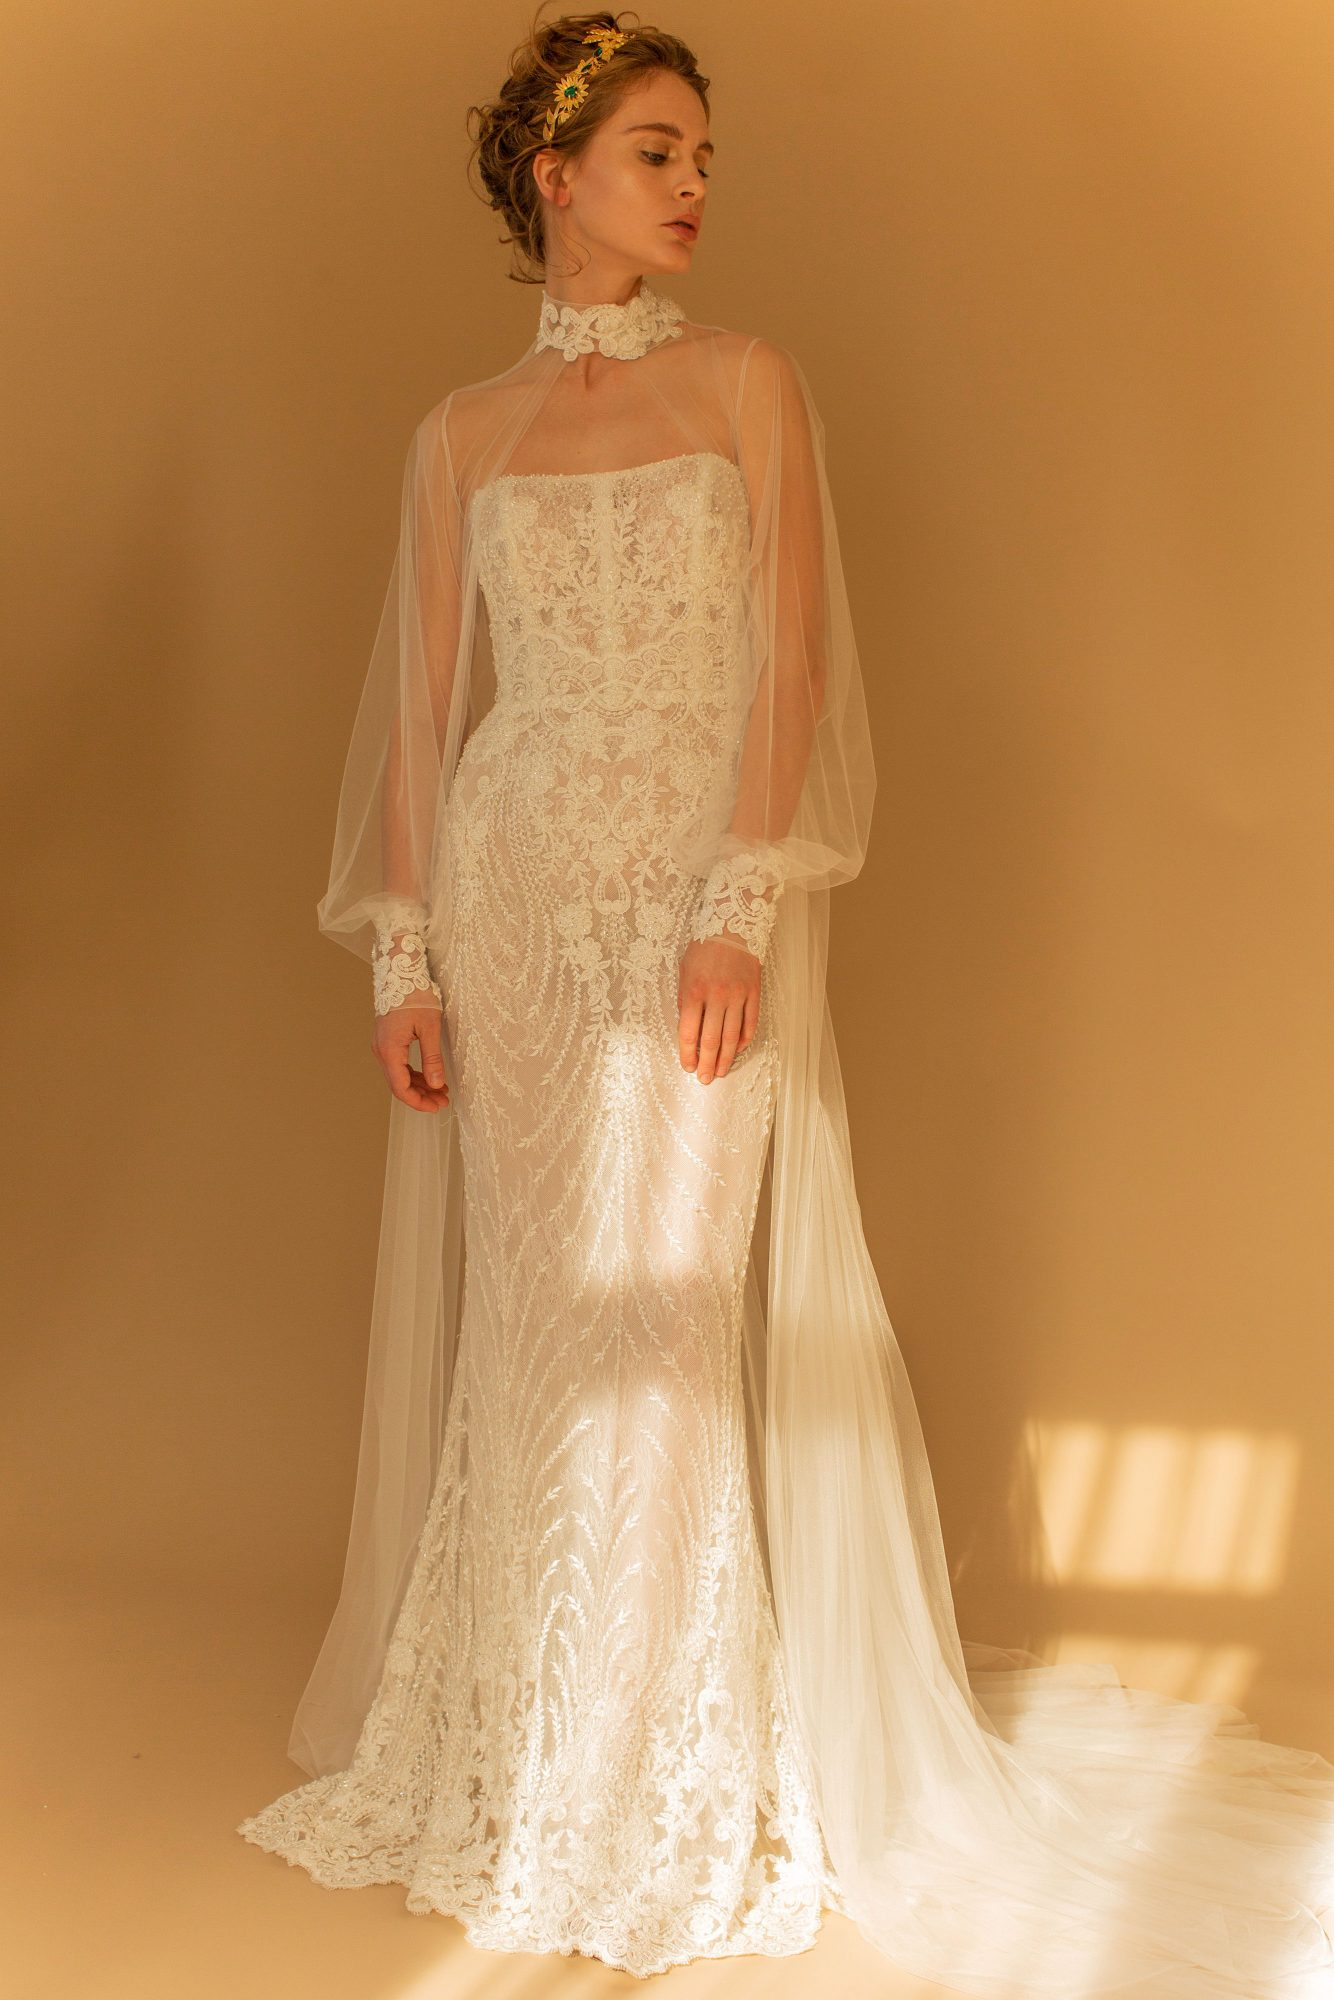 francesca miranda wedding dress fall 2018 illustion long sleeves embellished